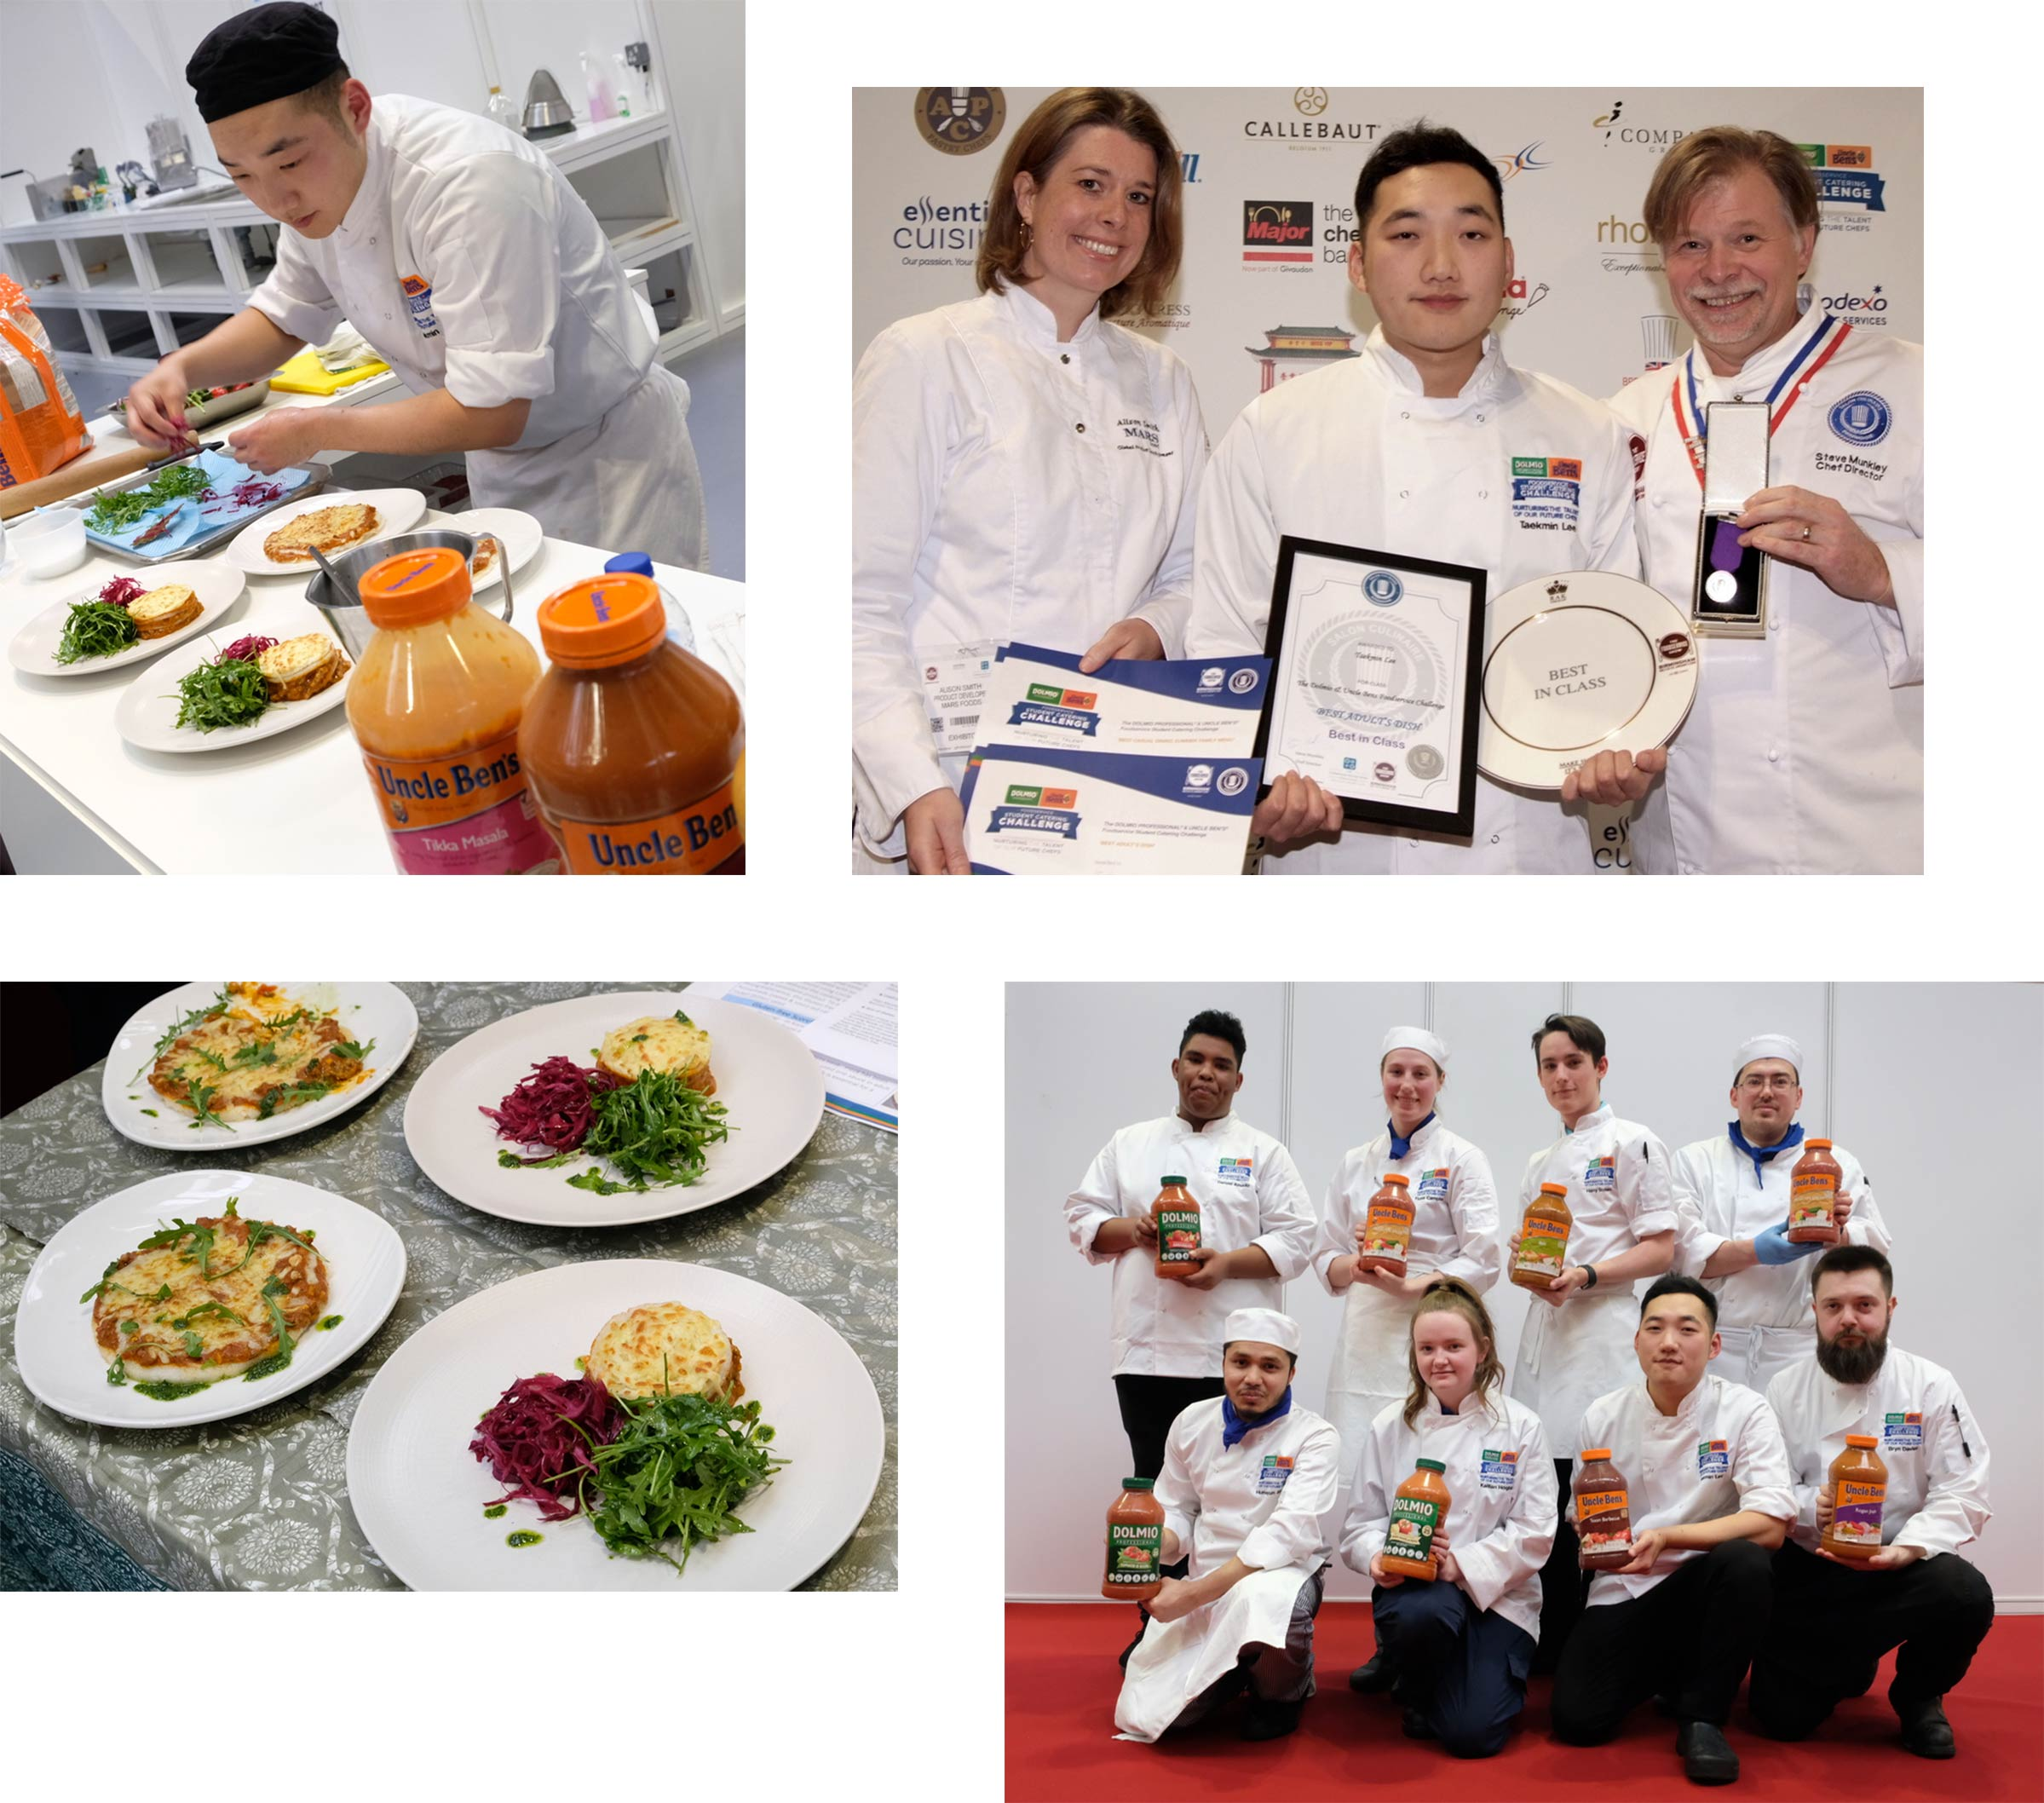 A collage of images including a selection of finished dishes, chefs cooking and winners posing for photos.